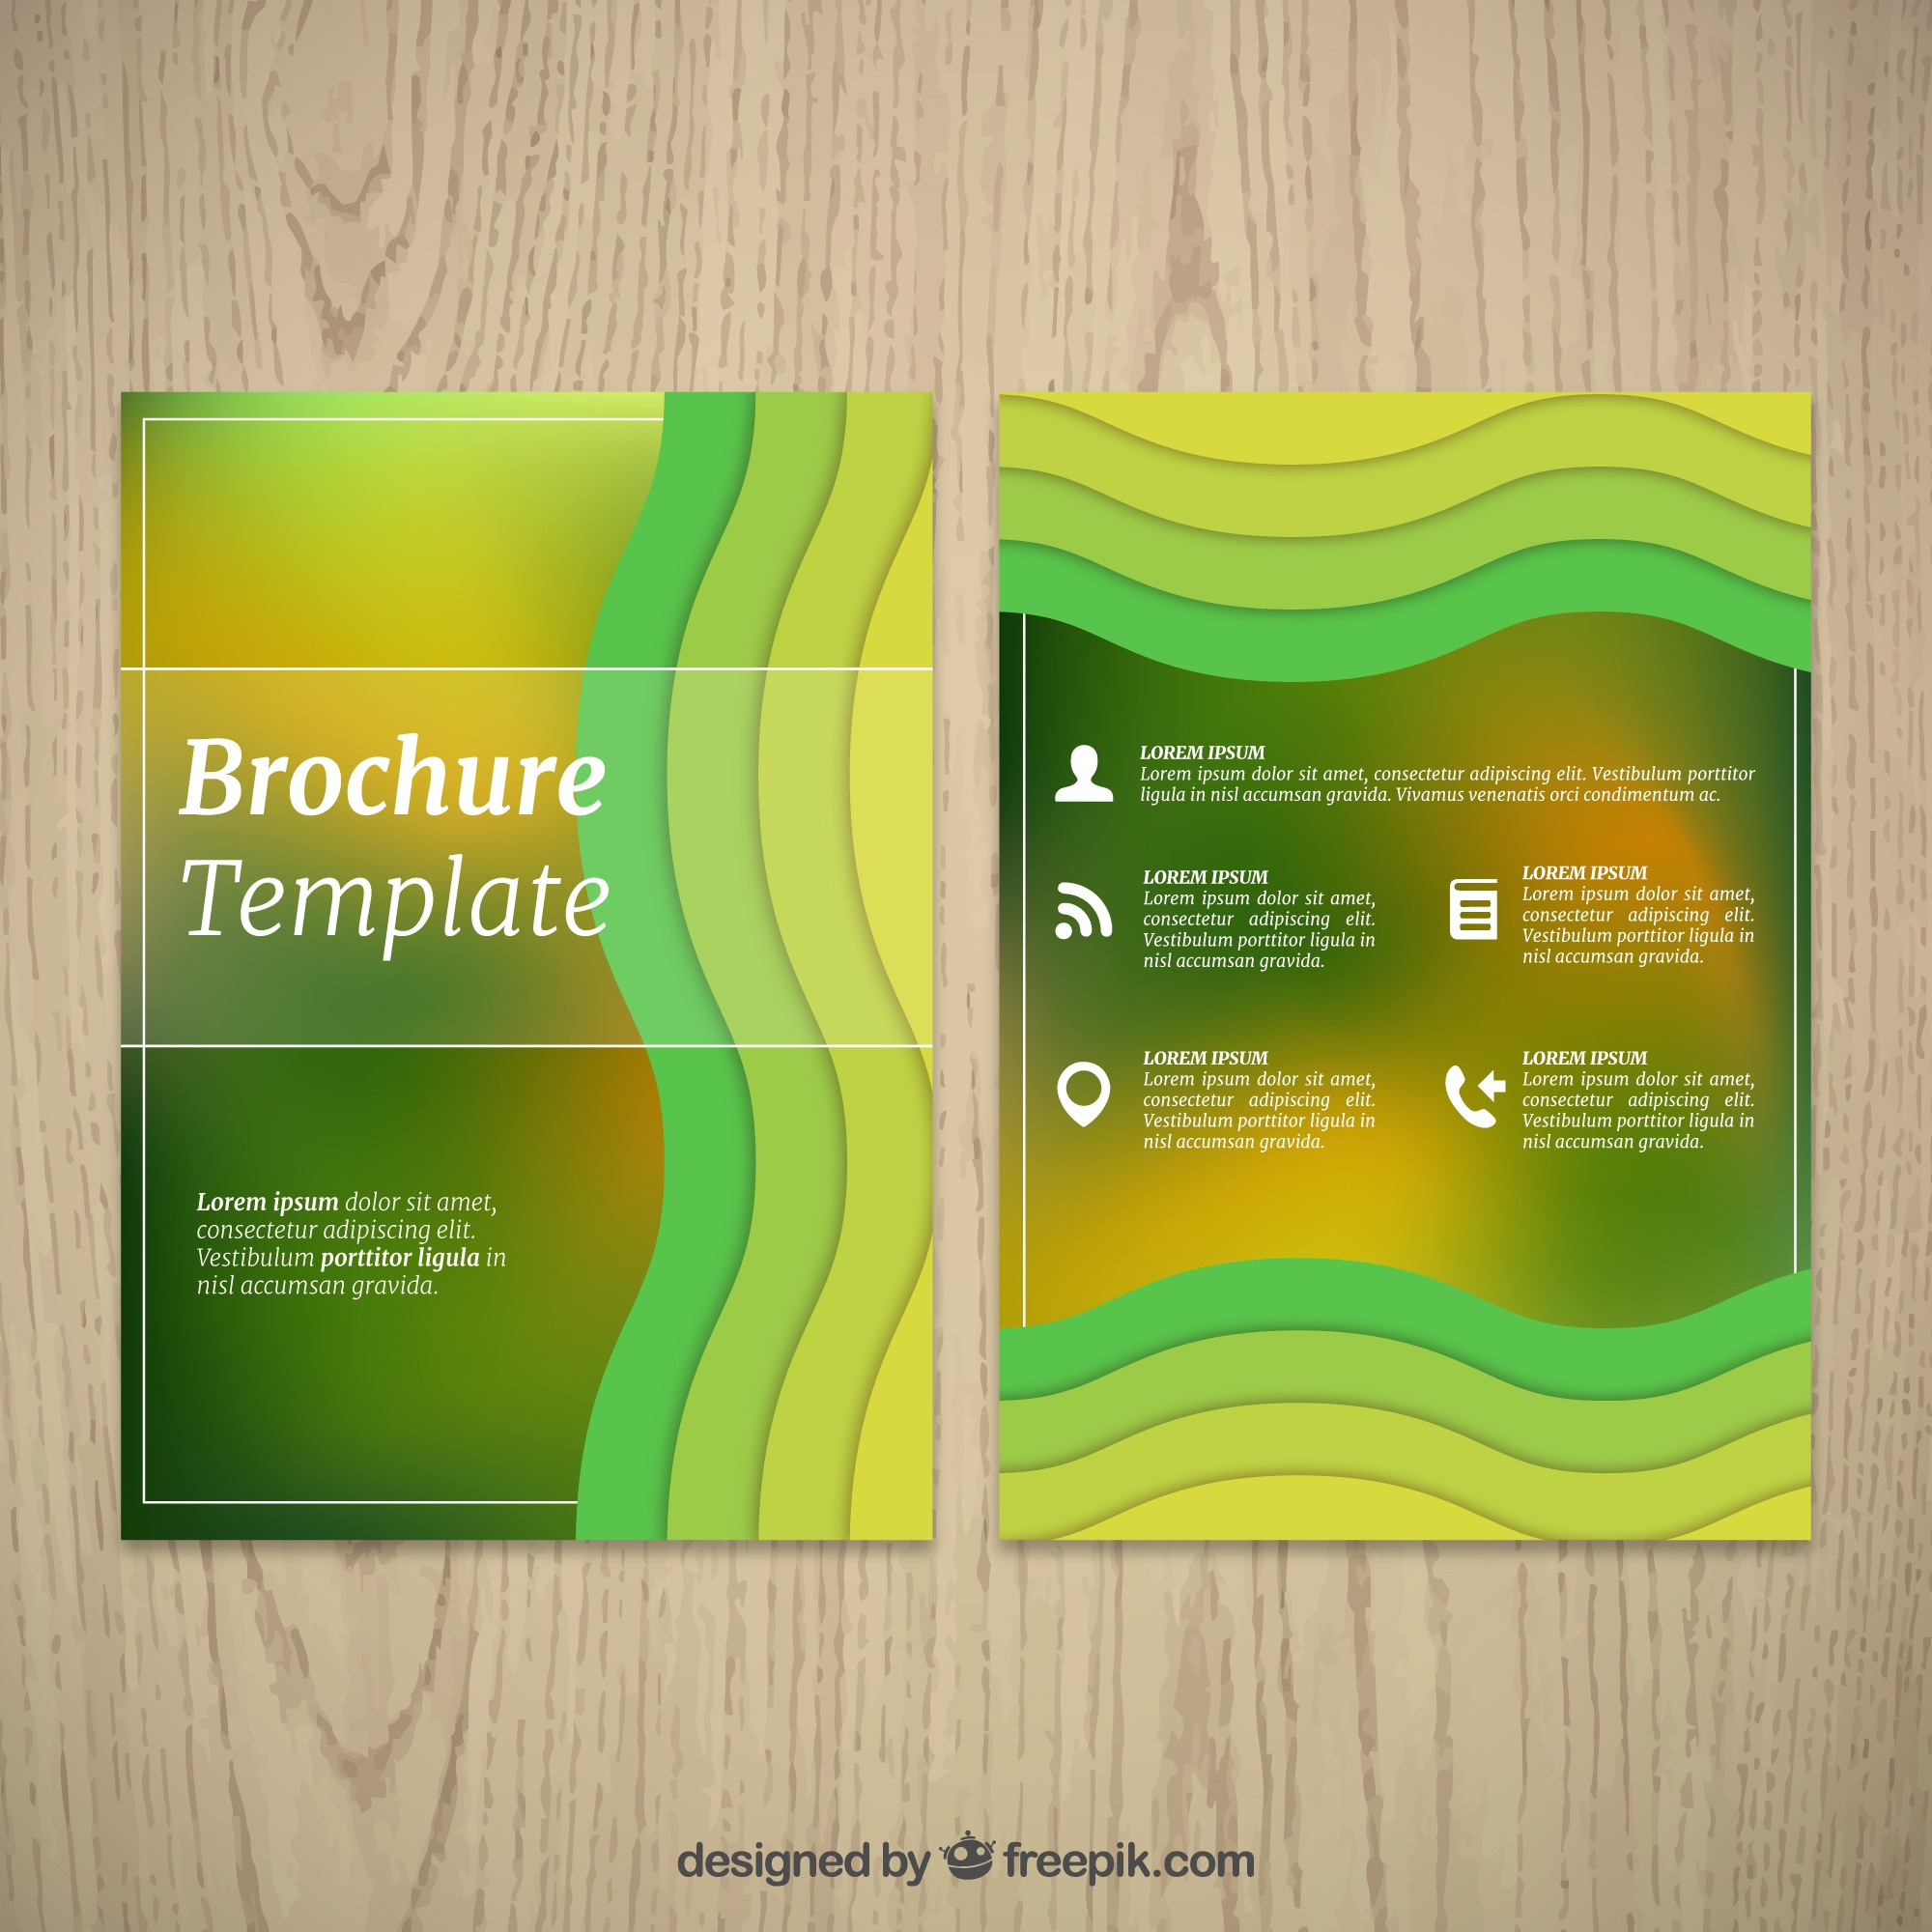 Green brochure with wavy shapes